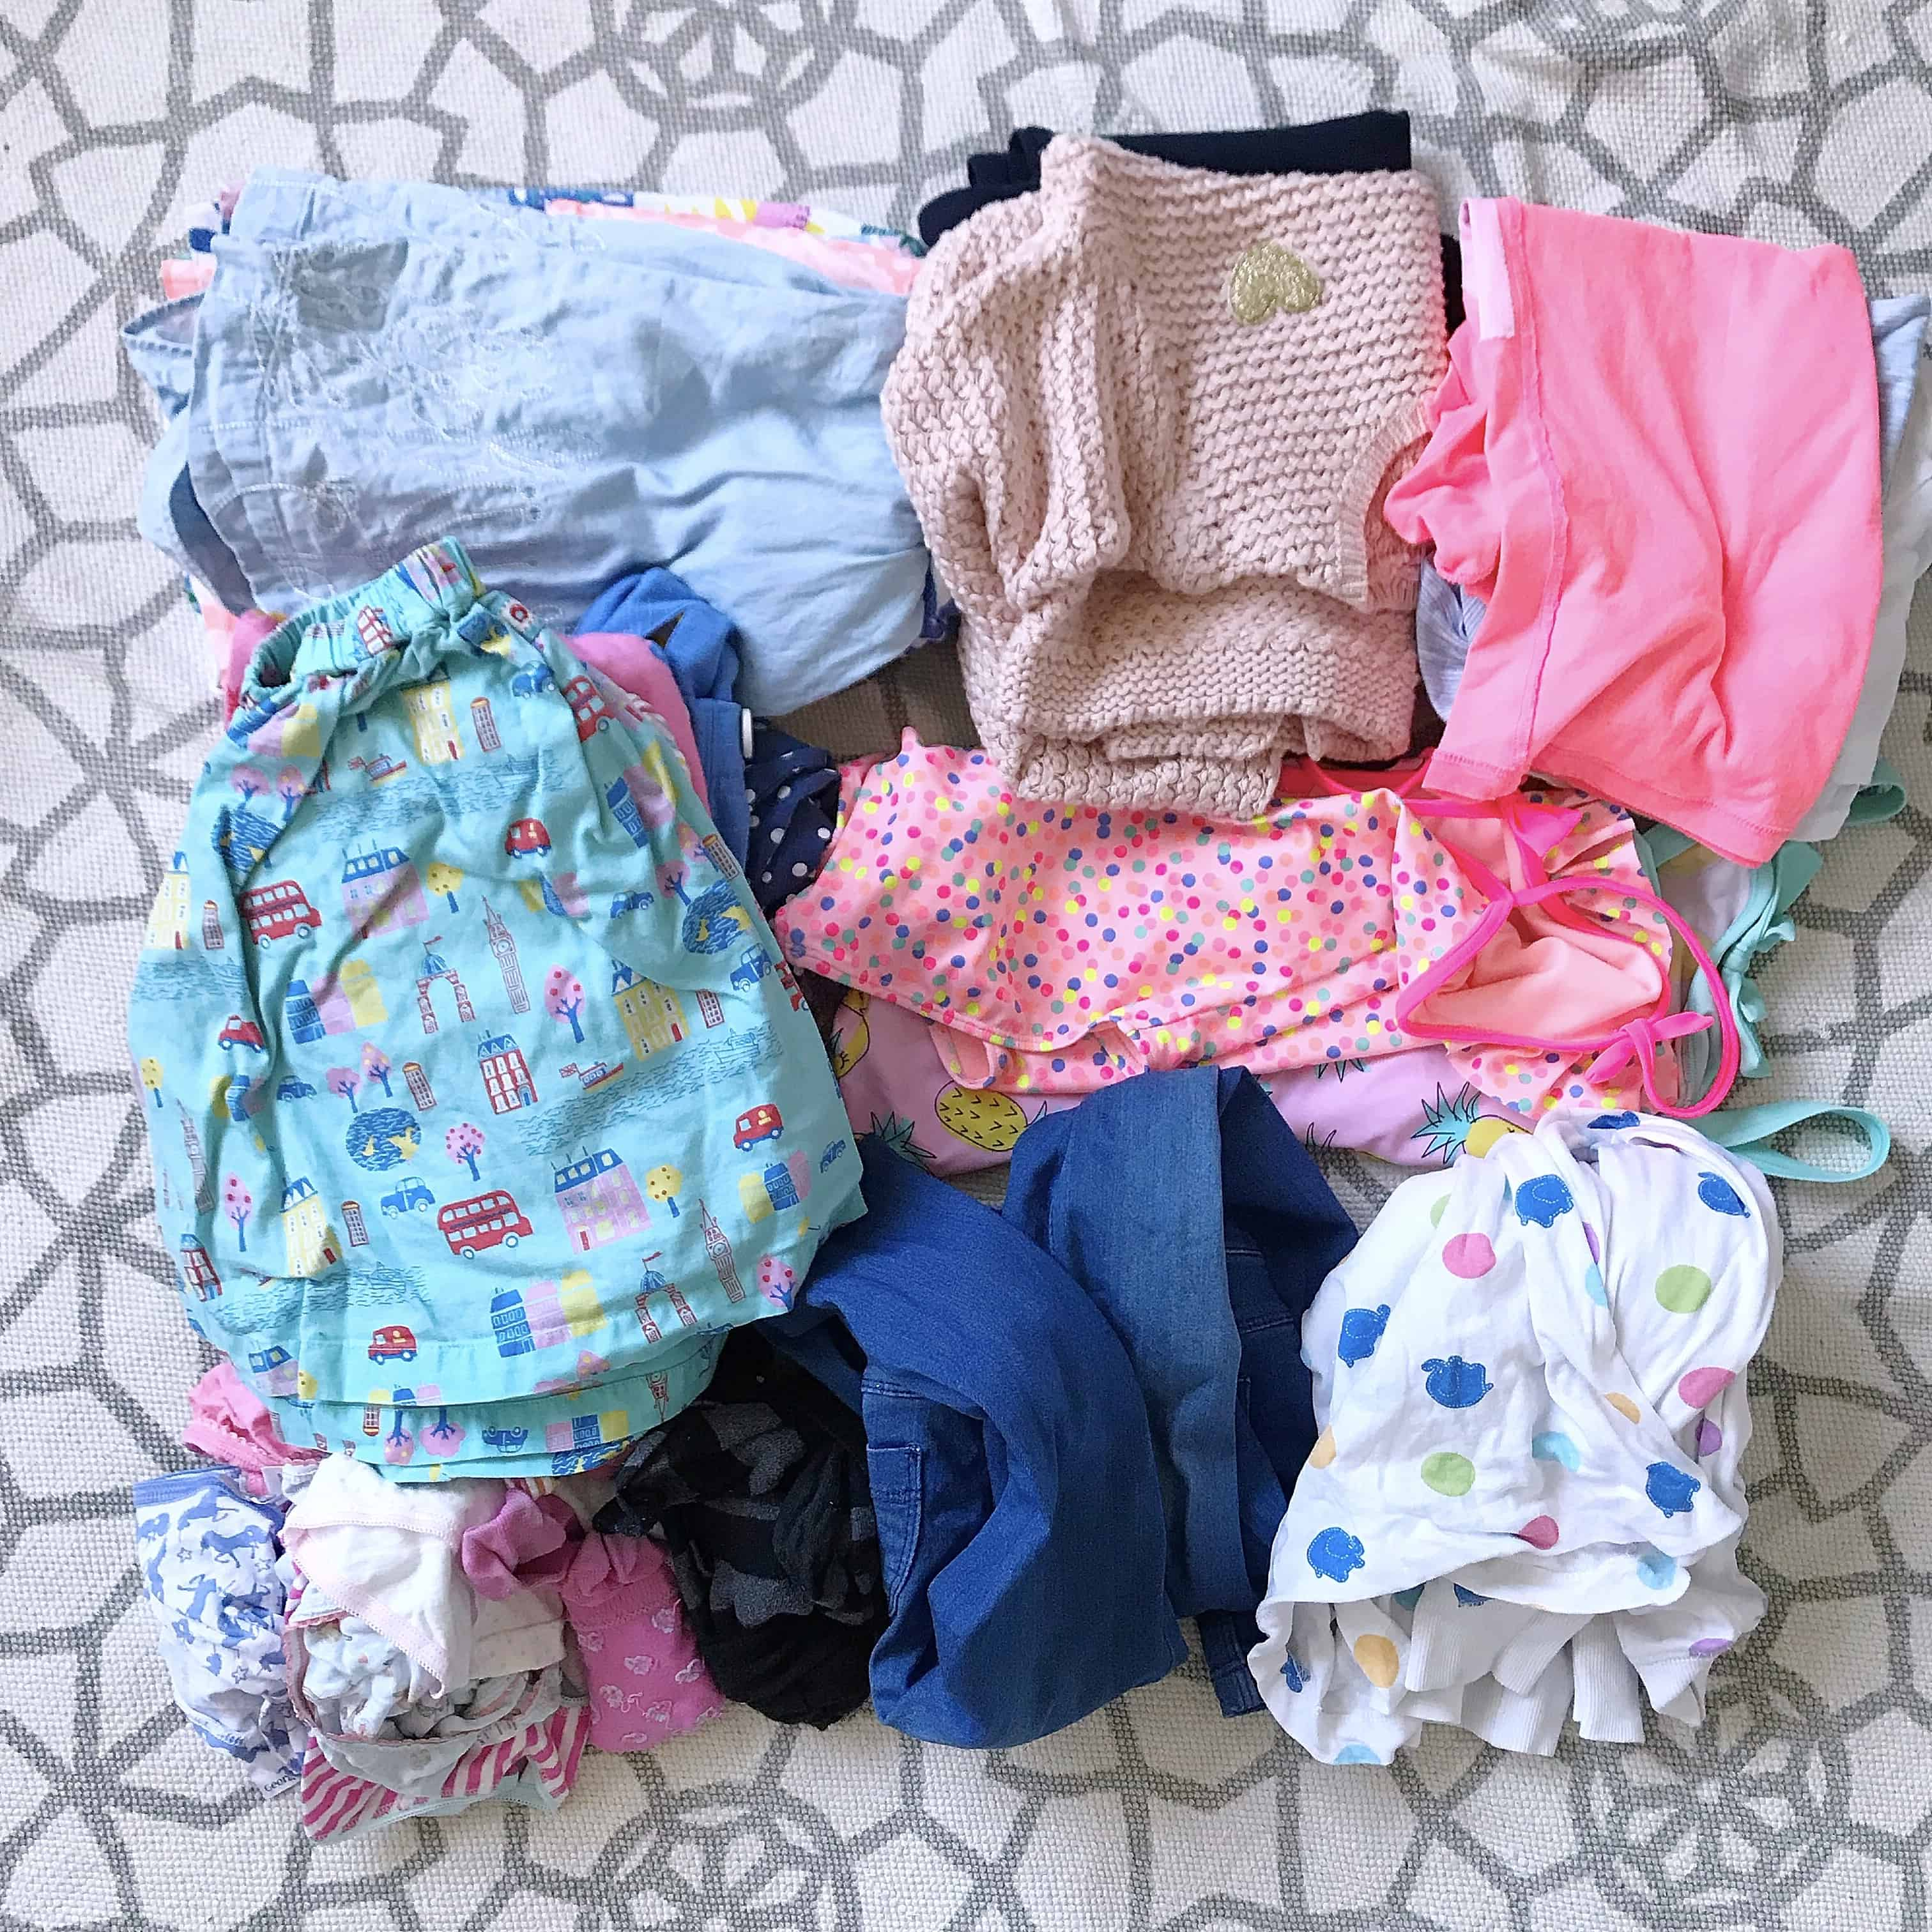 Girls clothes ready to pack